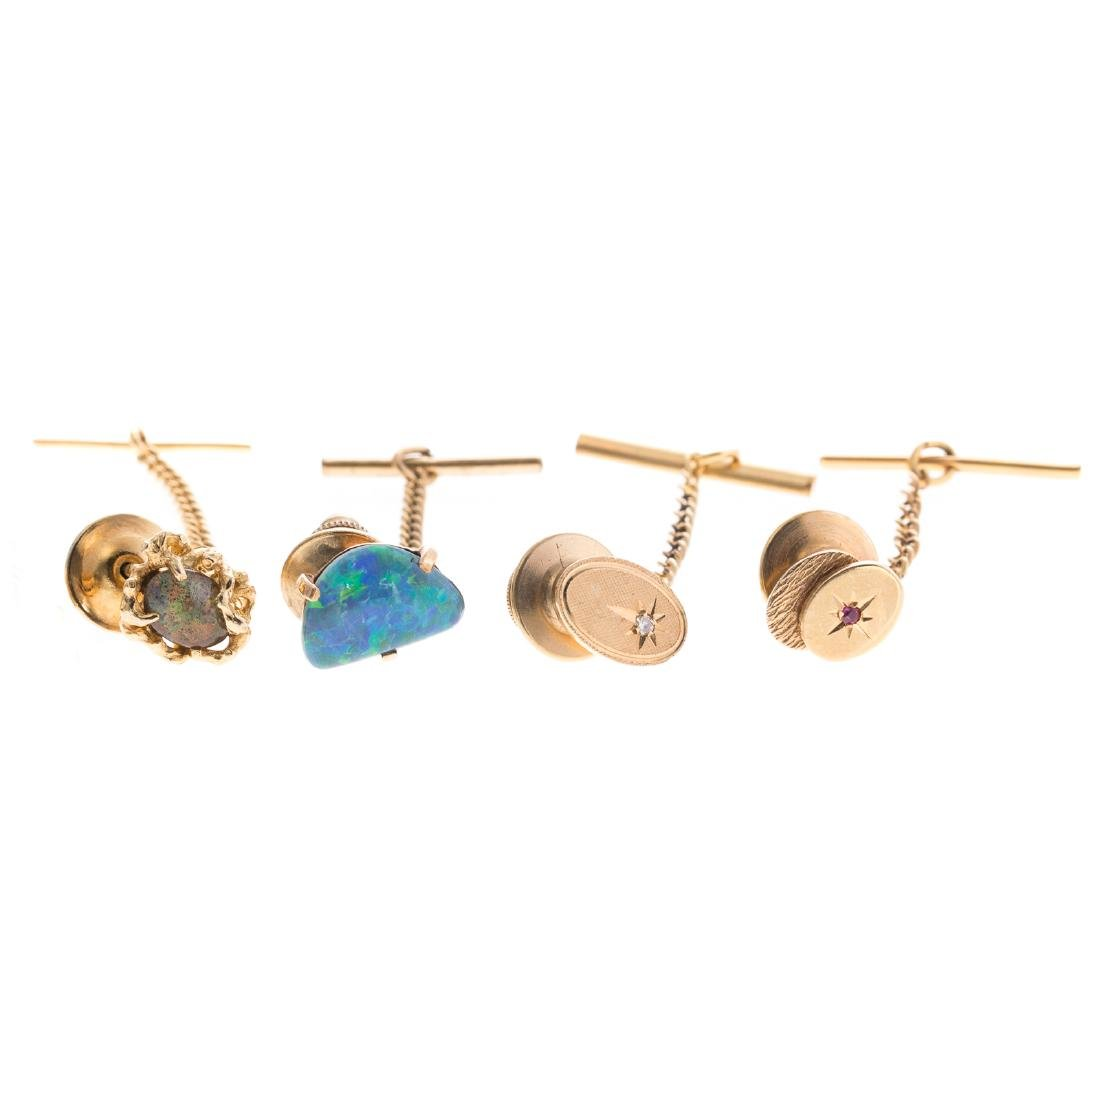 A Collection of Gentlemen's Tie Tacks in 14K